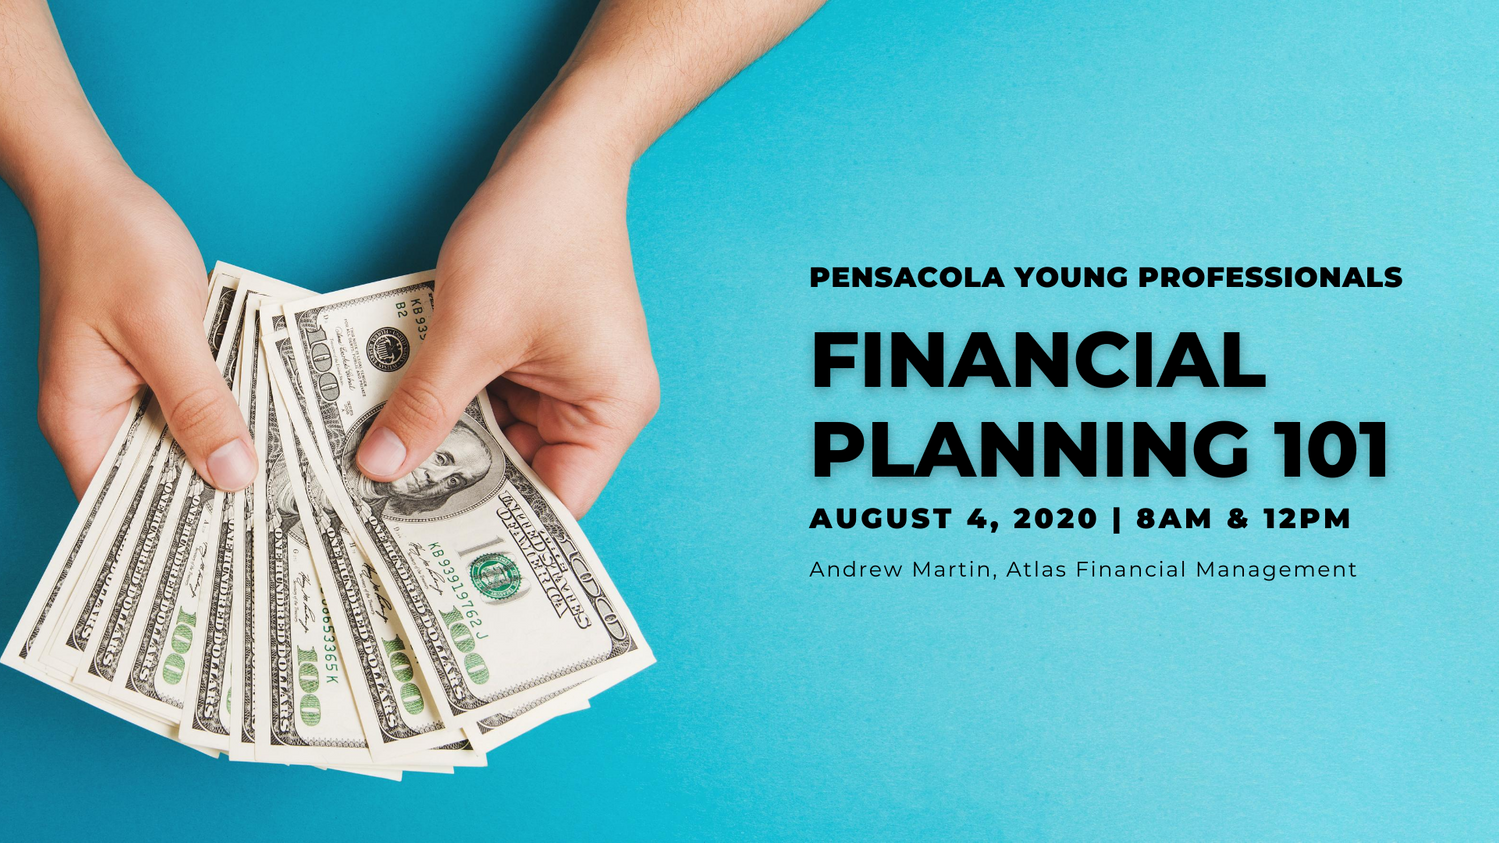 Financial Planning 101 | August 4, 2020 - 8am & 12pm